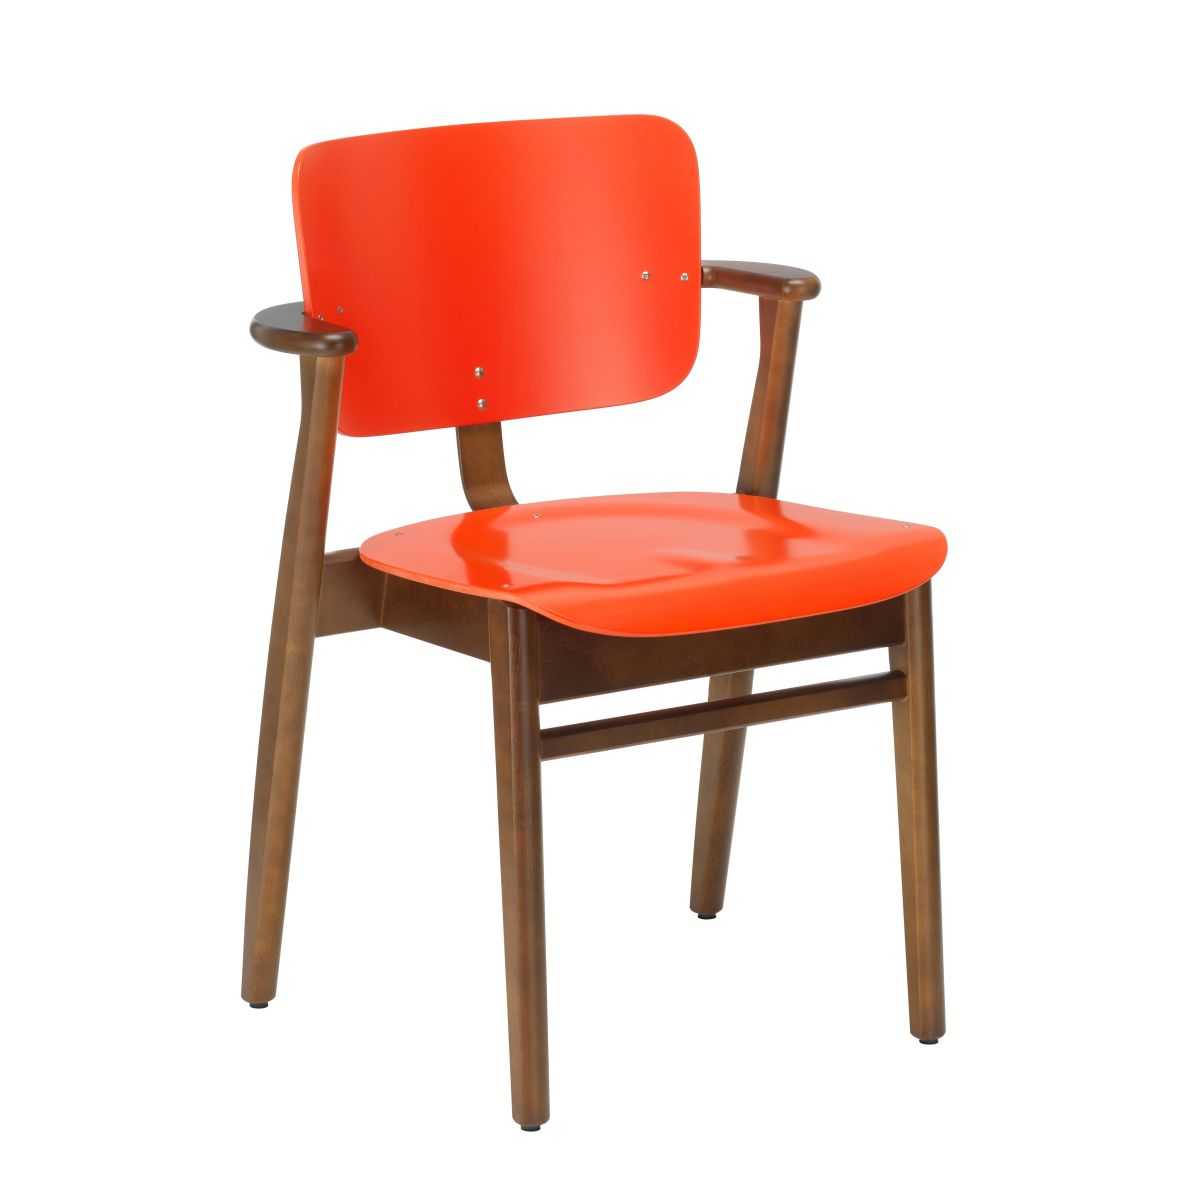 Domus_Chair_walnut_stain_bright_red_lacquer_F